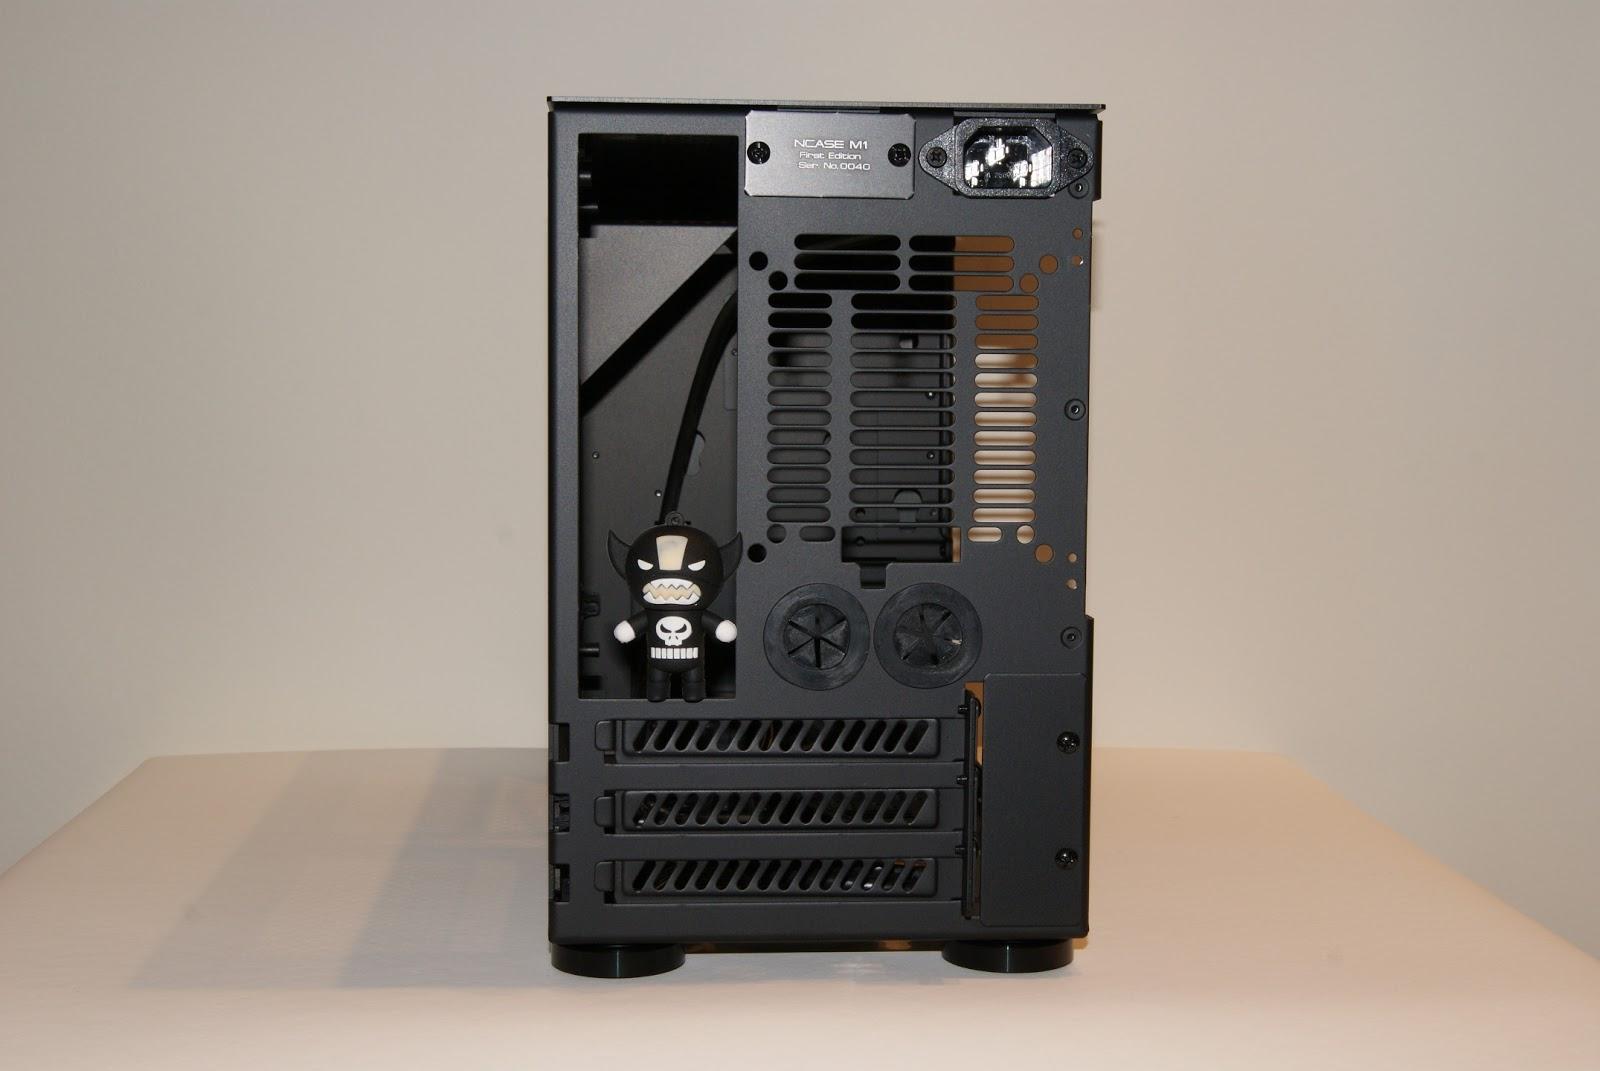 Posterior NCASE M1, caja Mini-ITX para PC Gamer